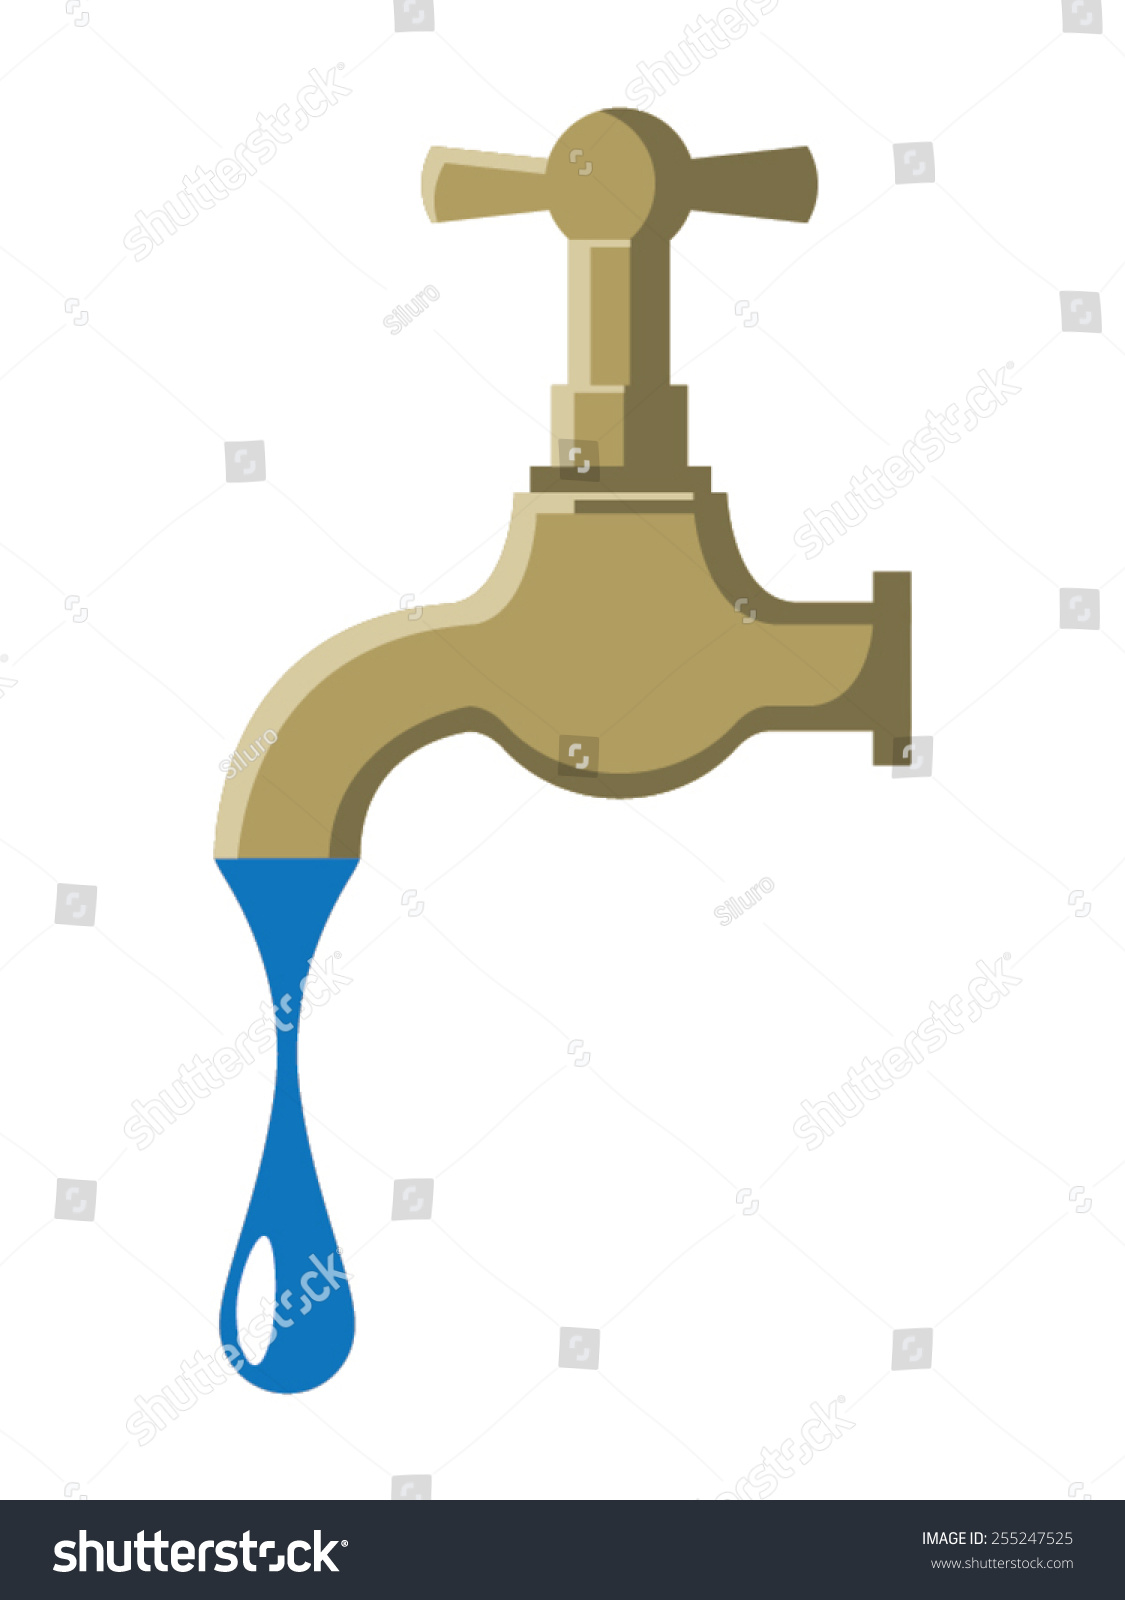 Vintage Tap Vector Illustration Representing Old Stock Vector ...